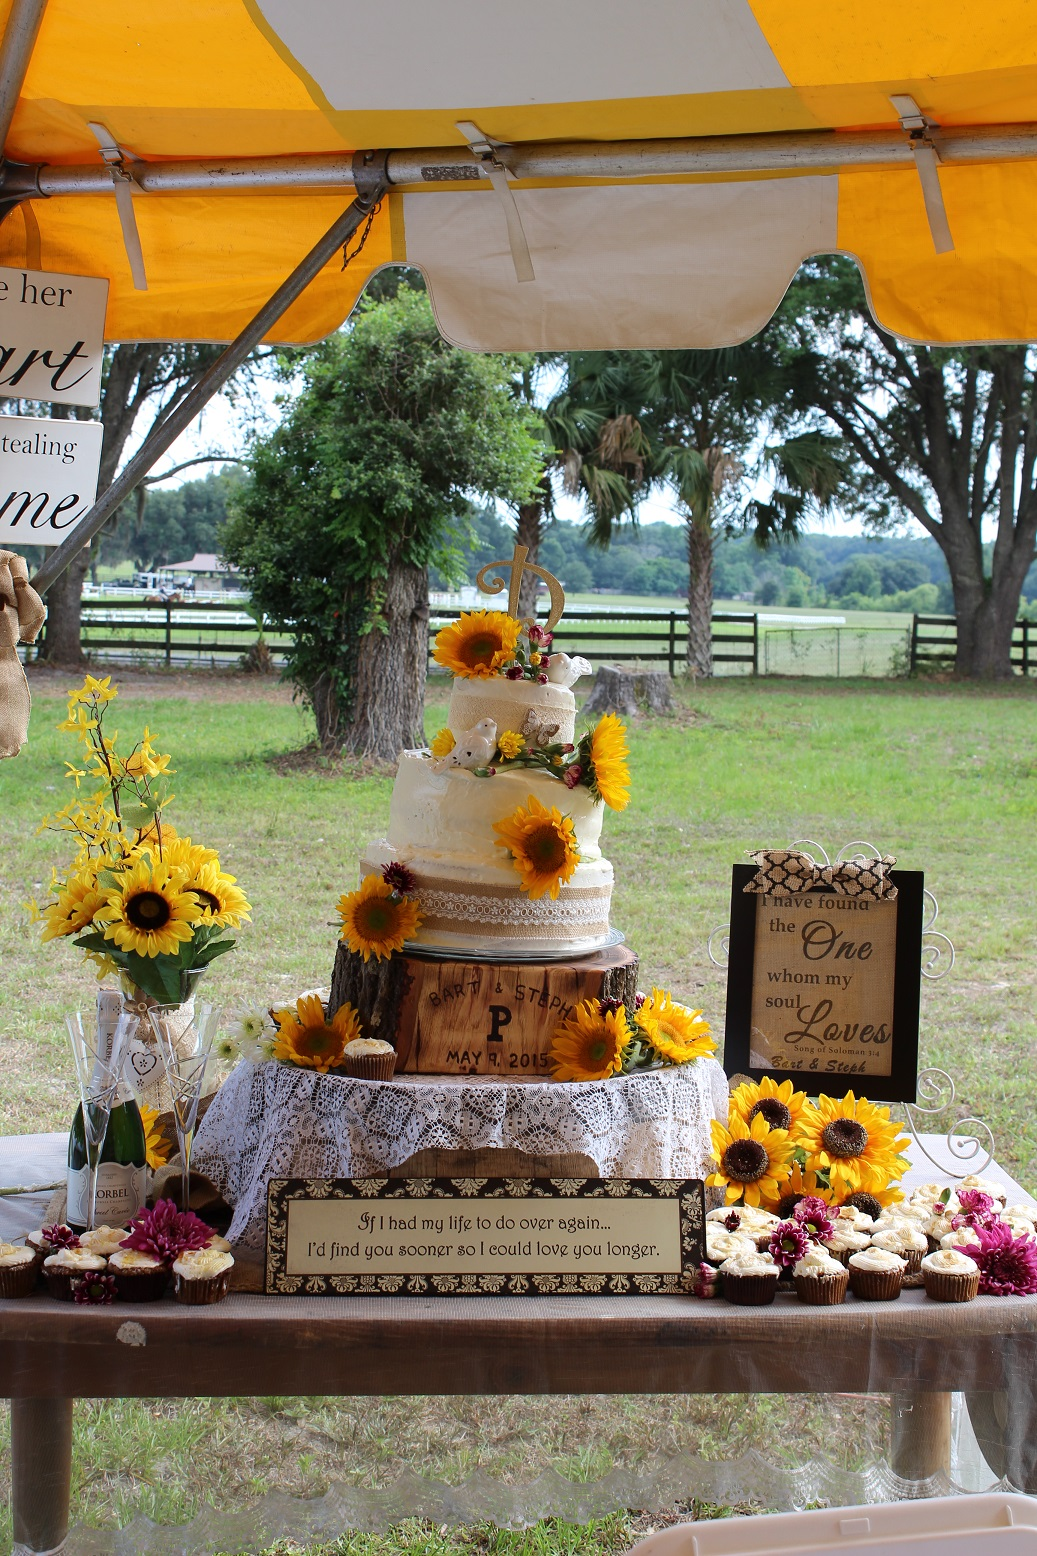 Cake table with cake